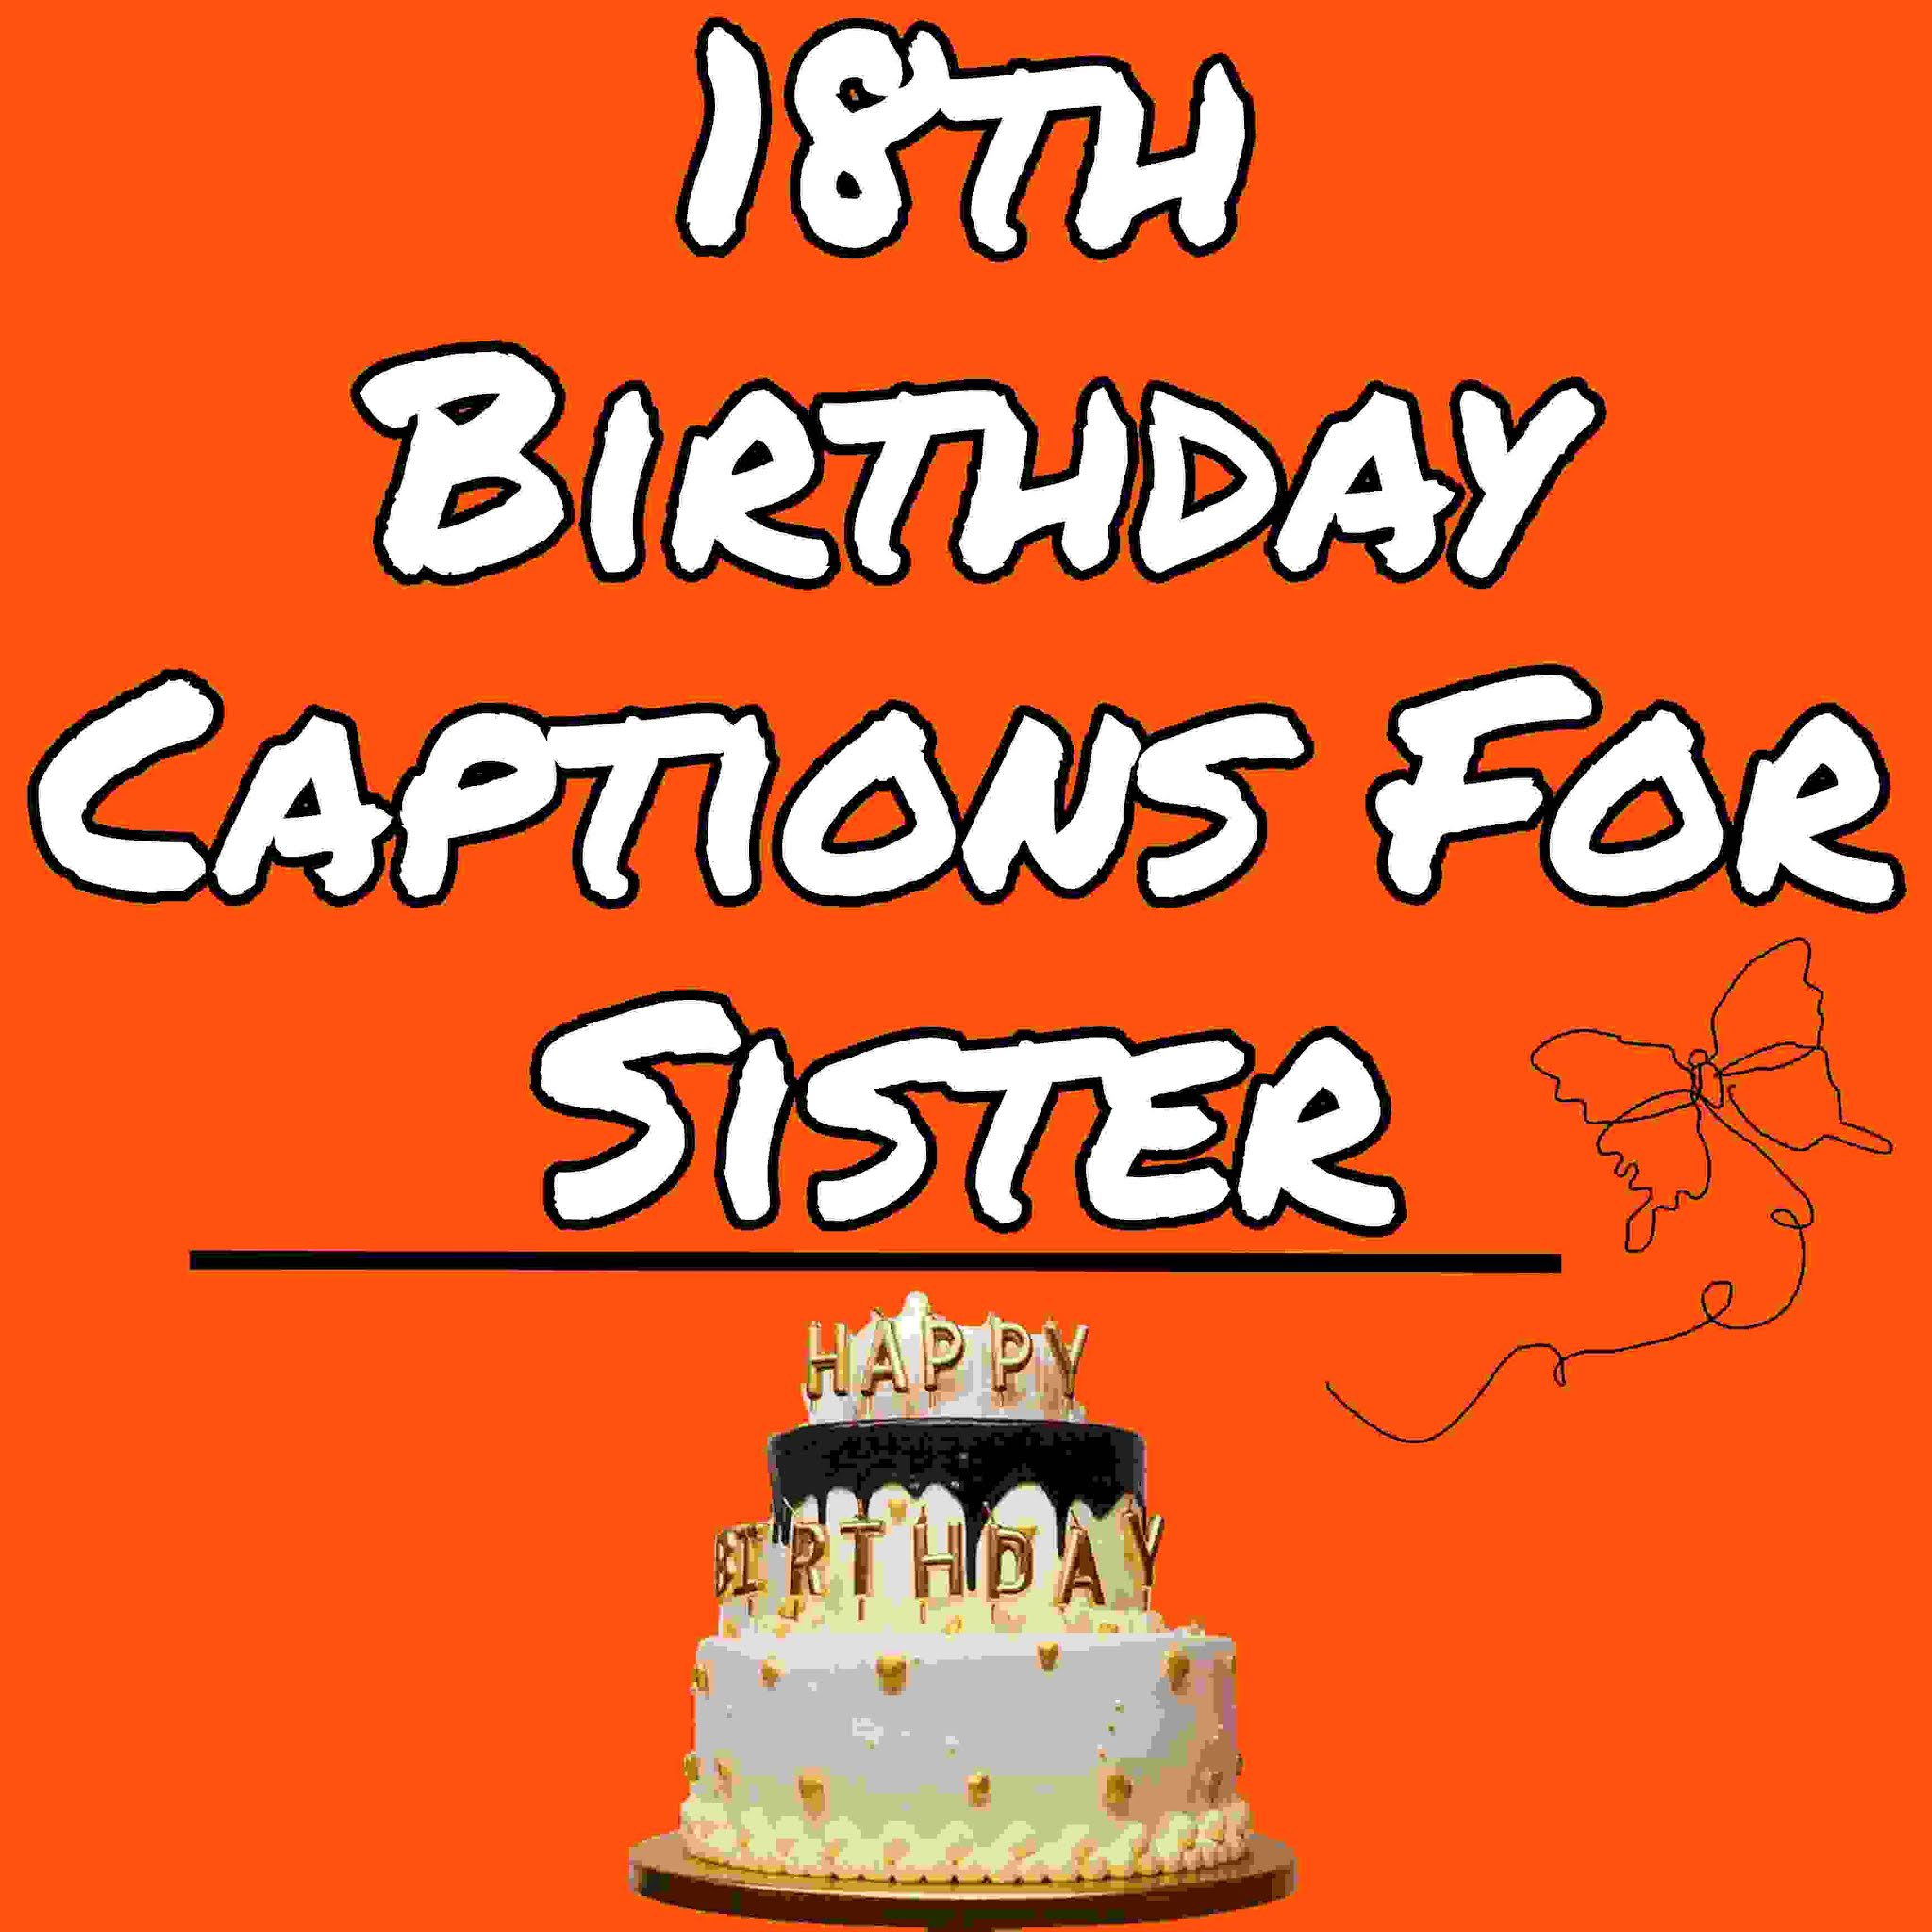 18th birthday captions for sister